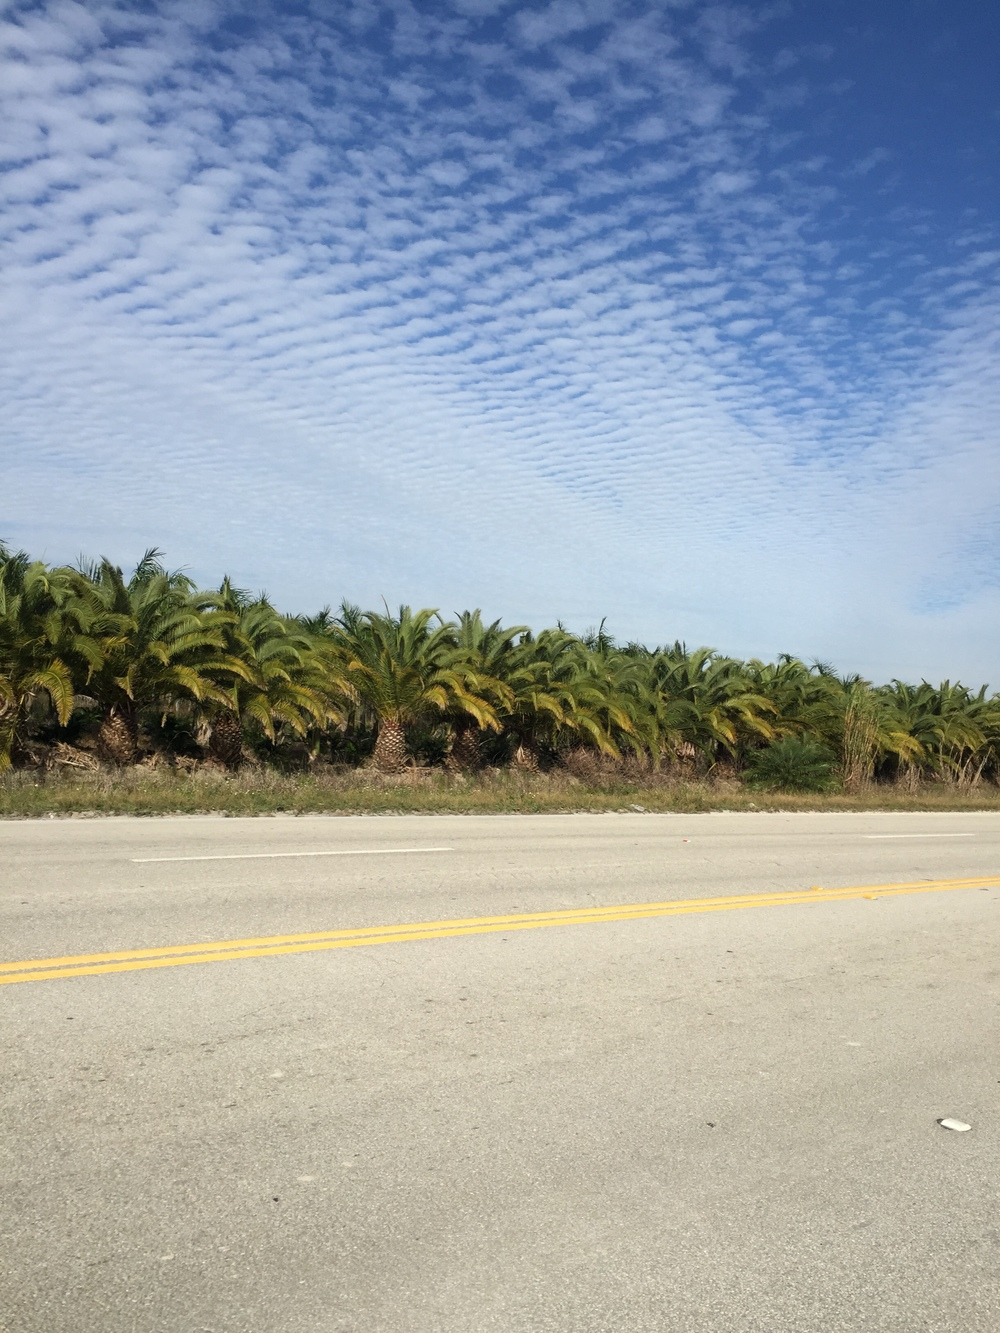 miles and miles and miles of palm tree farms